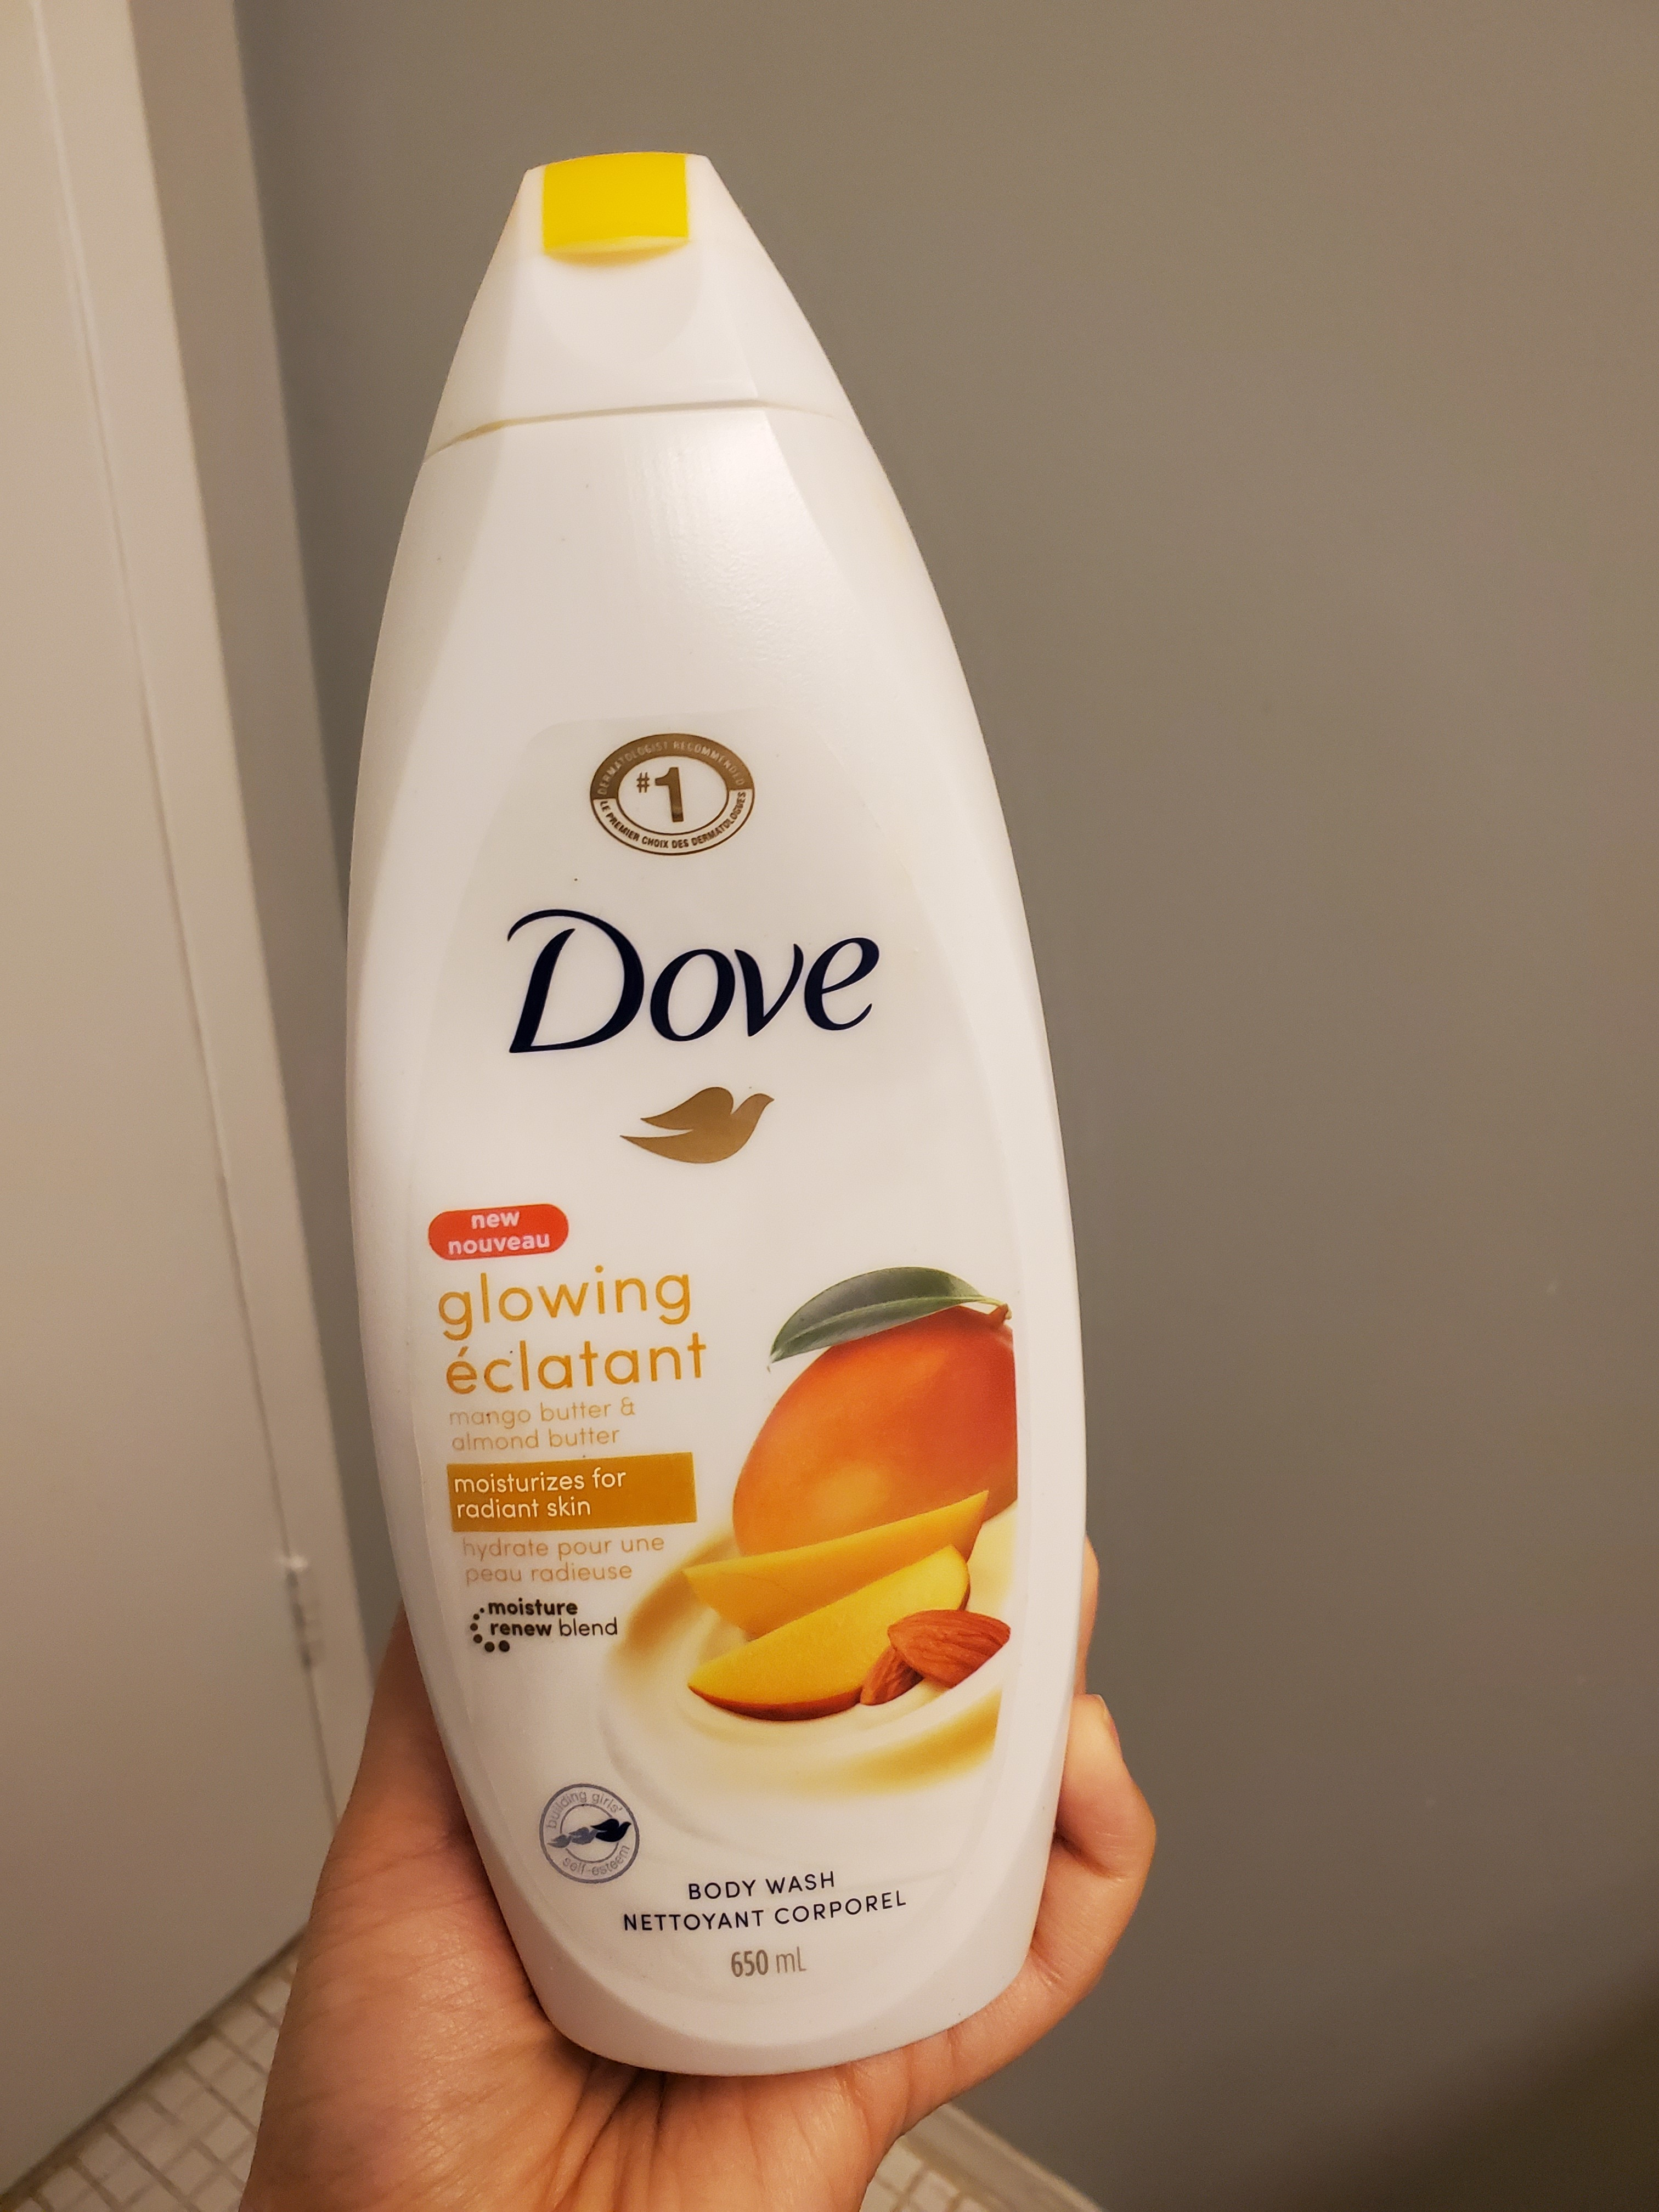 Dove Glowing Mango Butter And Almond Butter Body Wash Reviews In Body Wash Shower Gel Chickadvisor